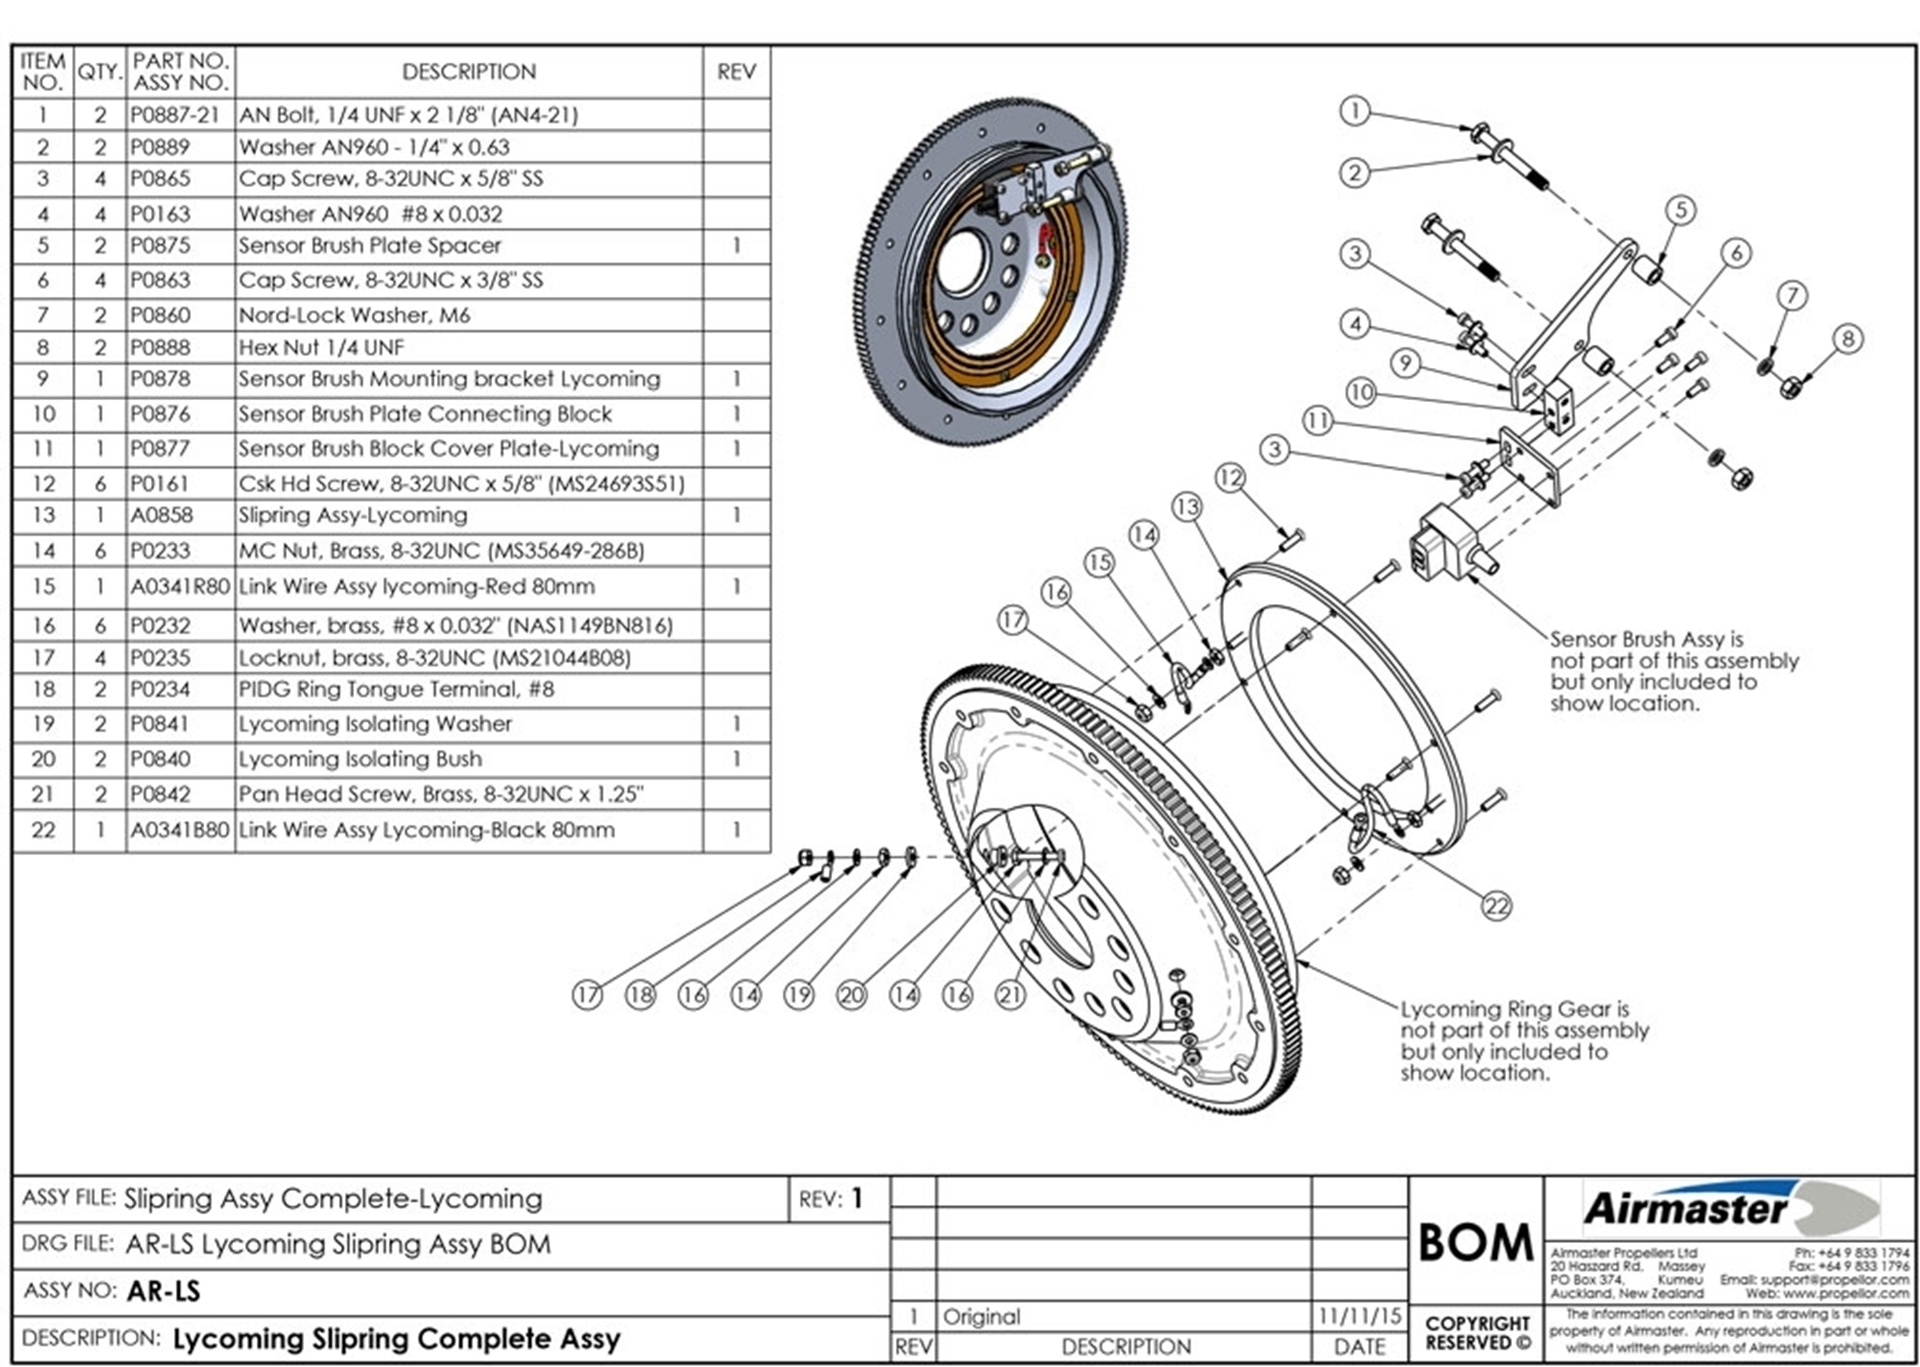 Wiring Diagram For Murphy Shutdown Kit Auto Electrical 3x12 36 Volt Golf Cart Related With